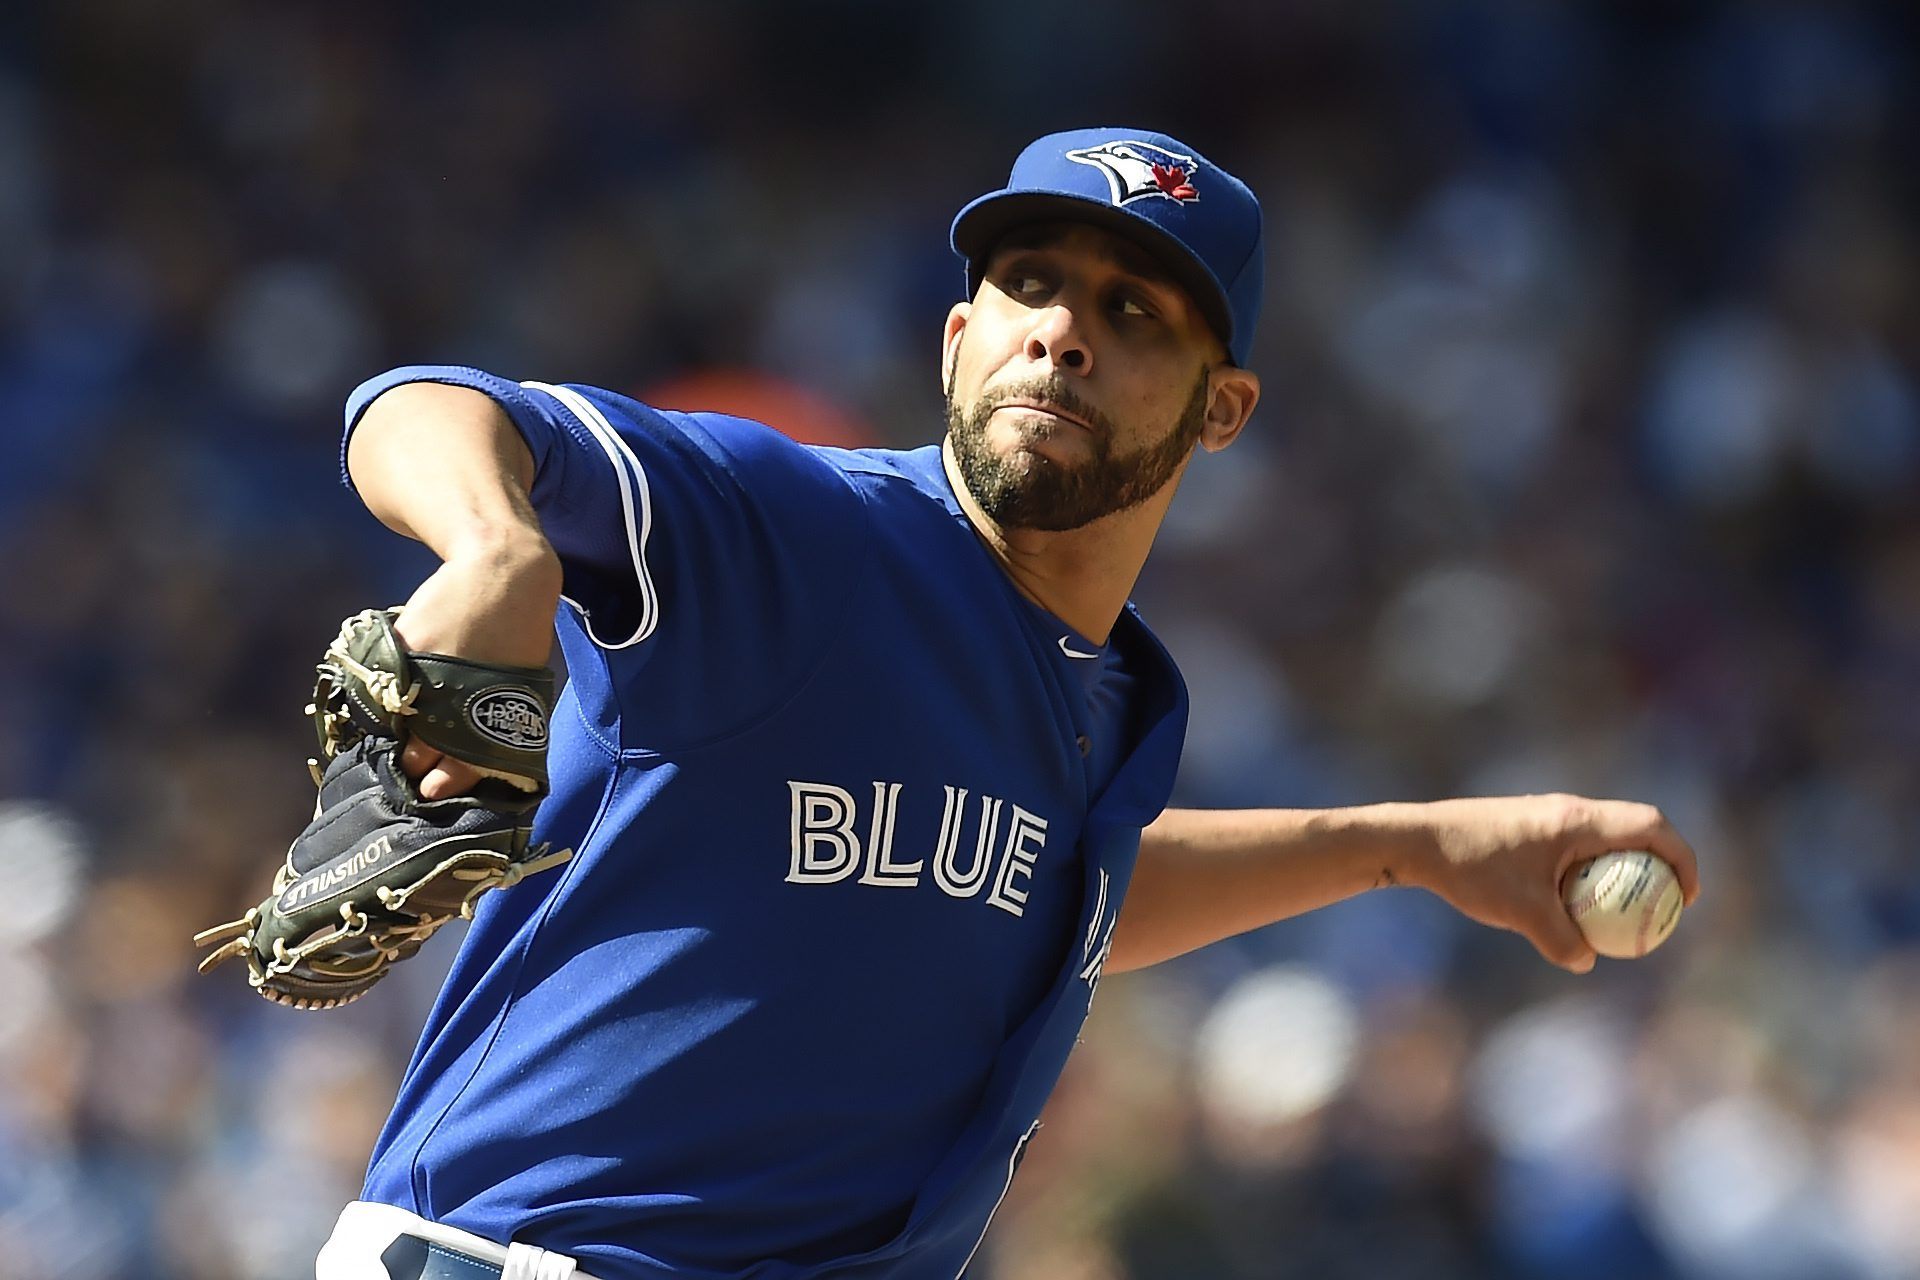 Toronto Blue Jays' starting pitcher David Price works against the Tampa Bay Rays during the third inning of a baseball game in Toronto, Saturday, Sept. 26, 2015. (Frank Gunn/The Canadian Press via AP) MANDATORY CREDIT